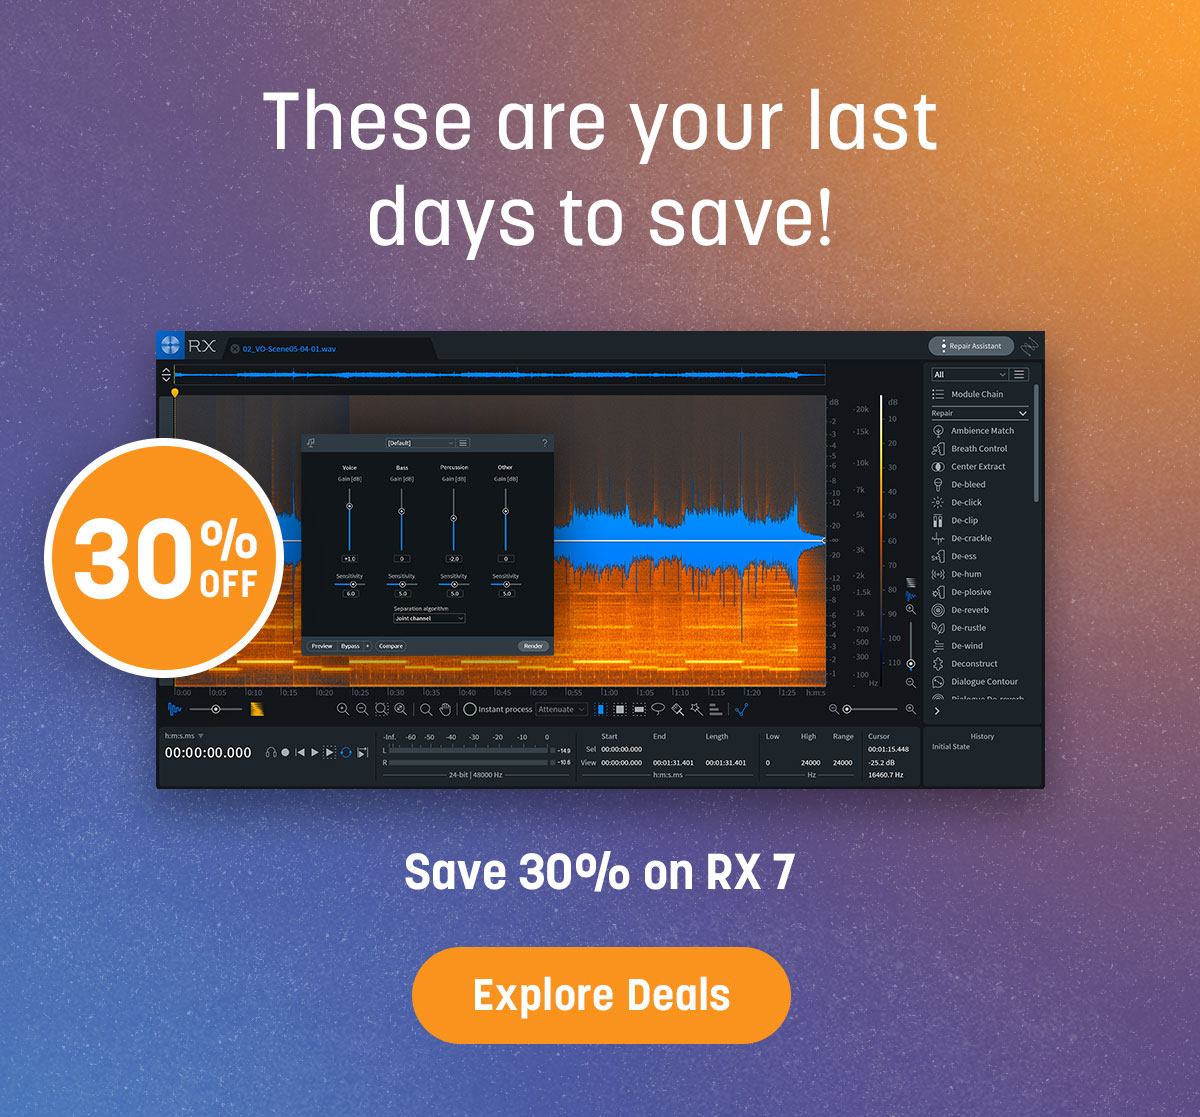 These are your last days to save!